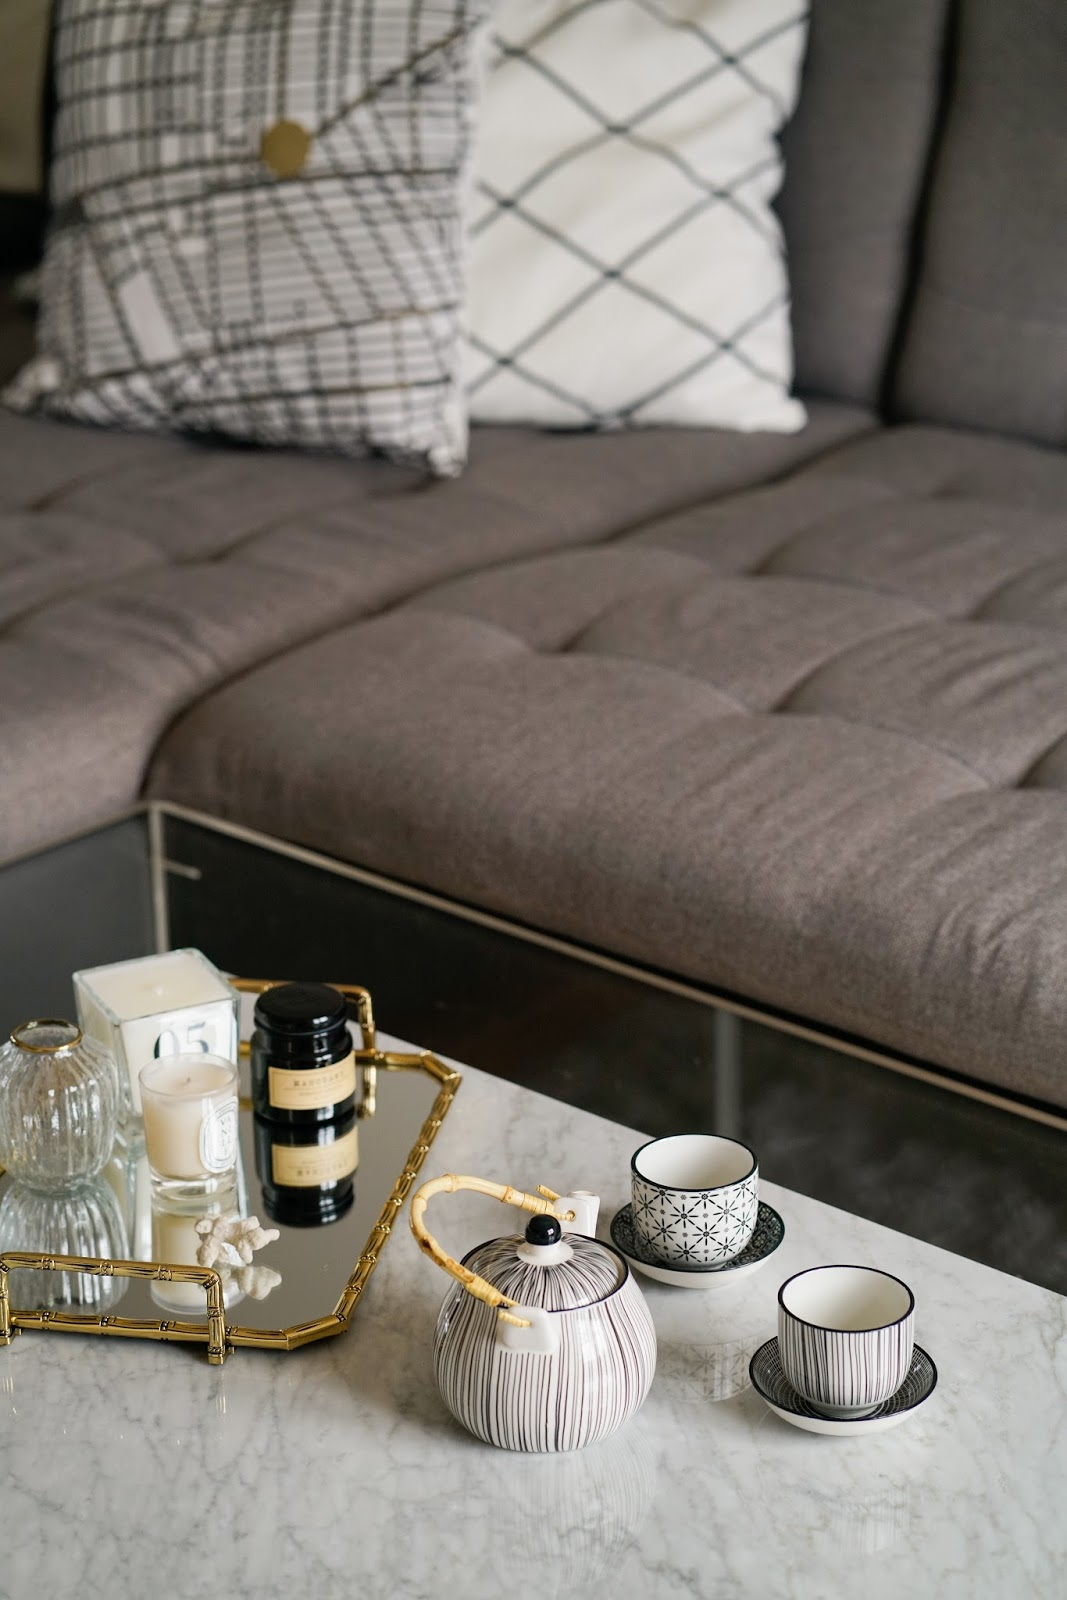 Couchtisch H&m Living Room Update Marmor And Gold Details Fashion Equals